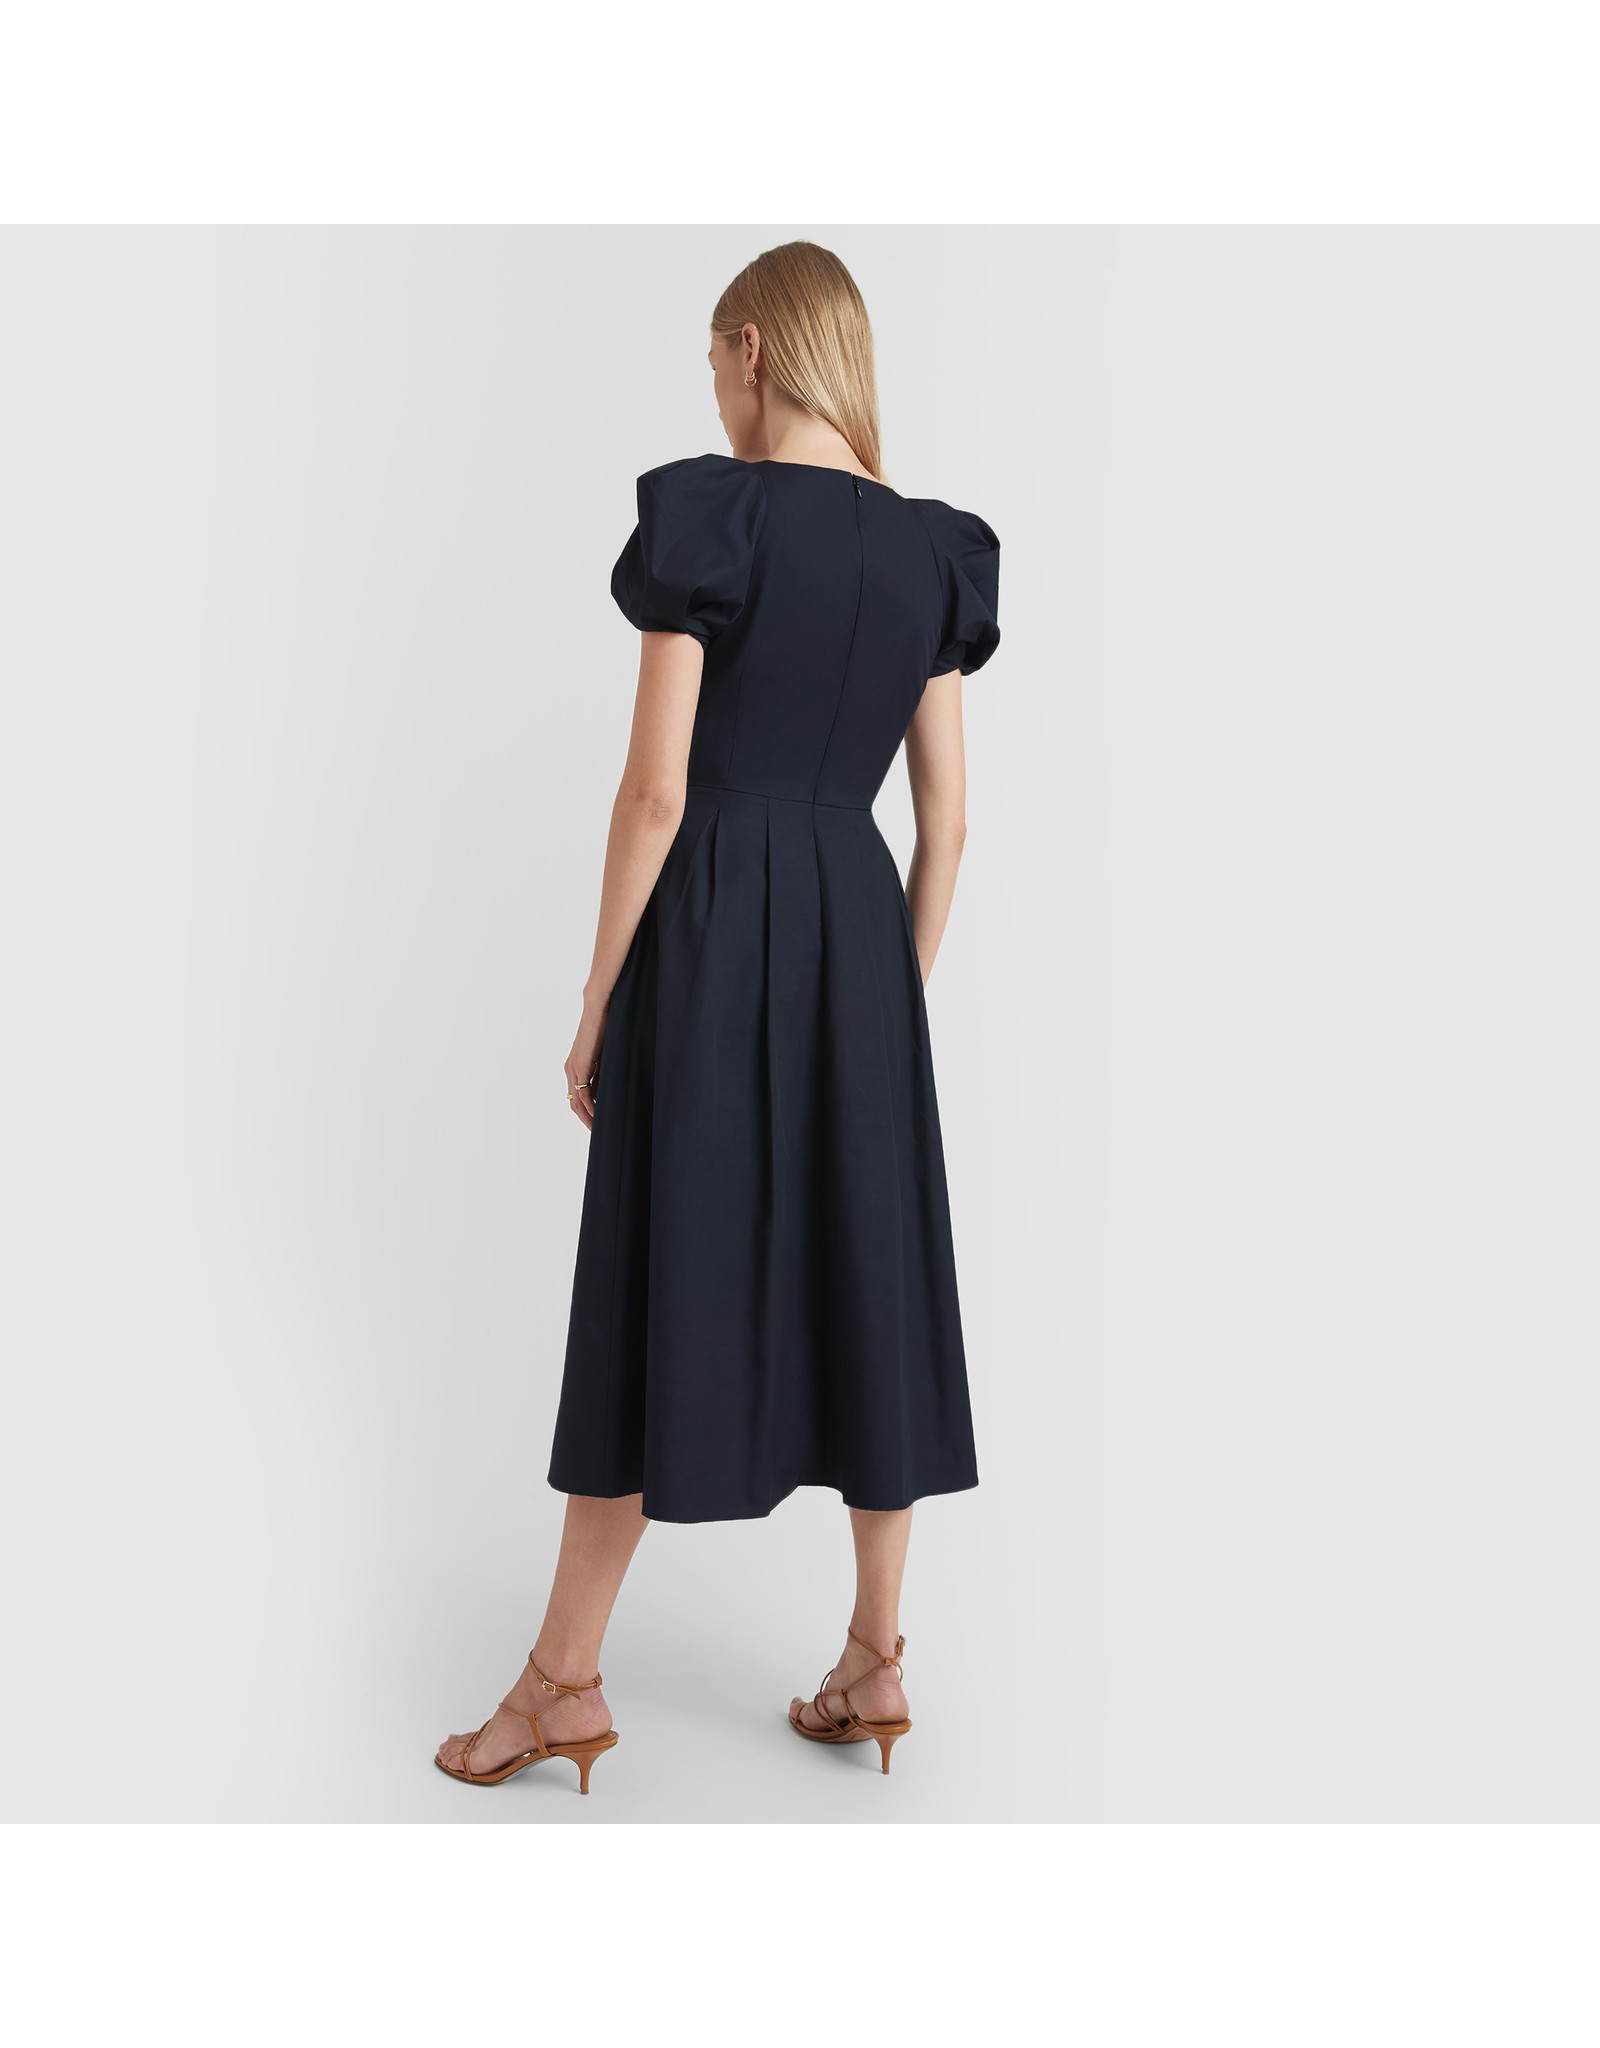 G. Label Elle Rounded Sleeve Mid Length Dress (Color: Navy, Size: 0)